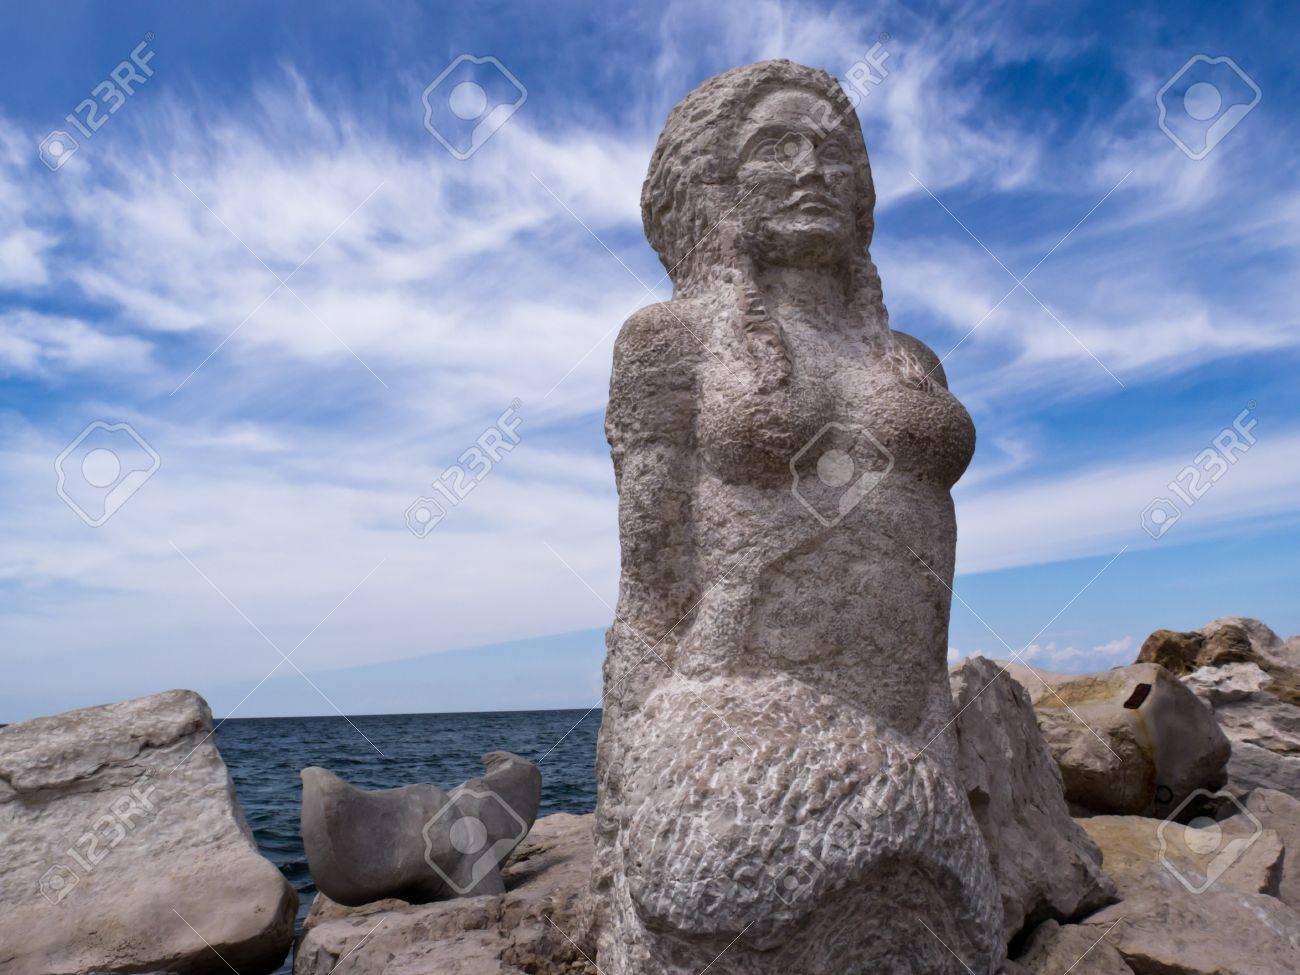 a mermaid sculpture carved from stone a rocky background the